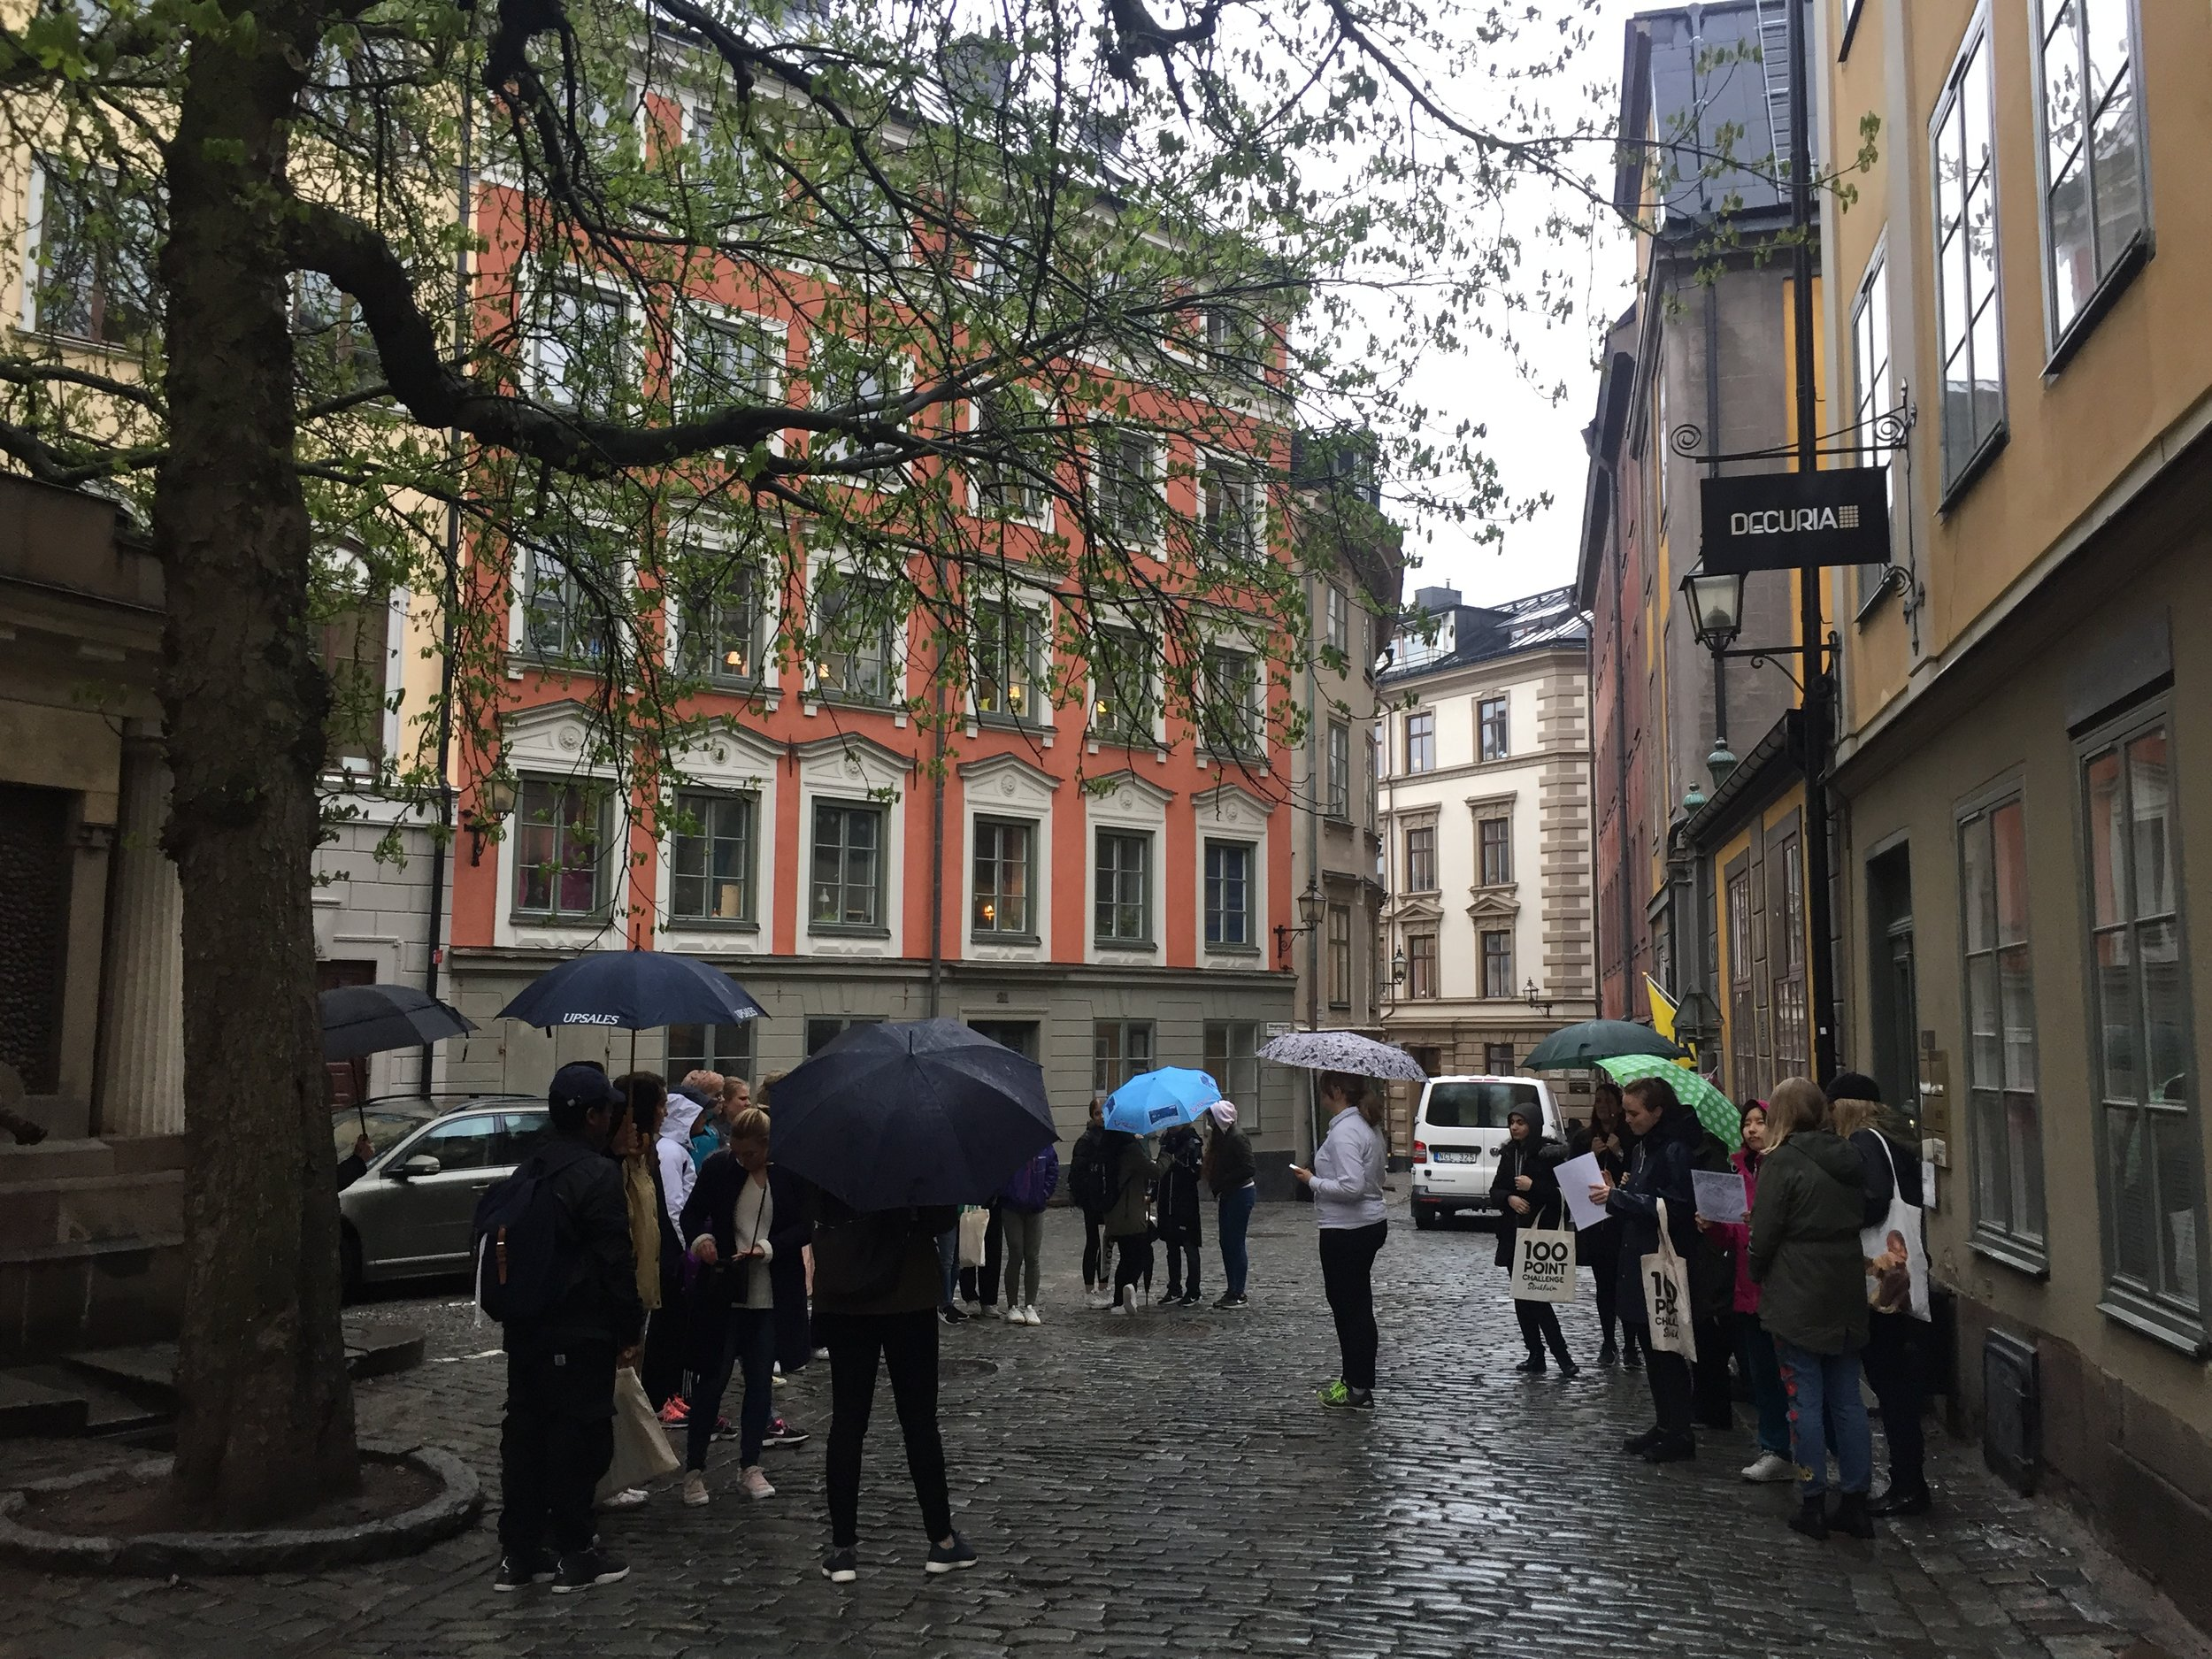 A rainy day in Stockholm!